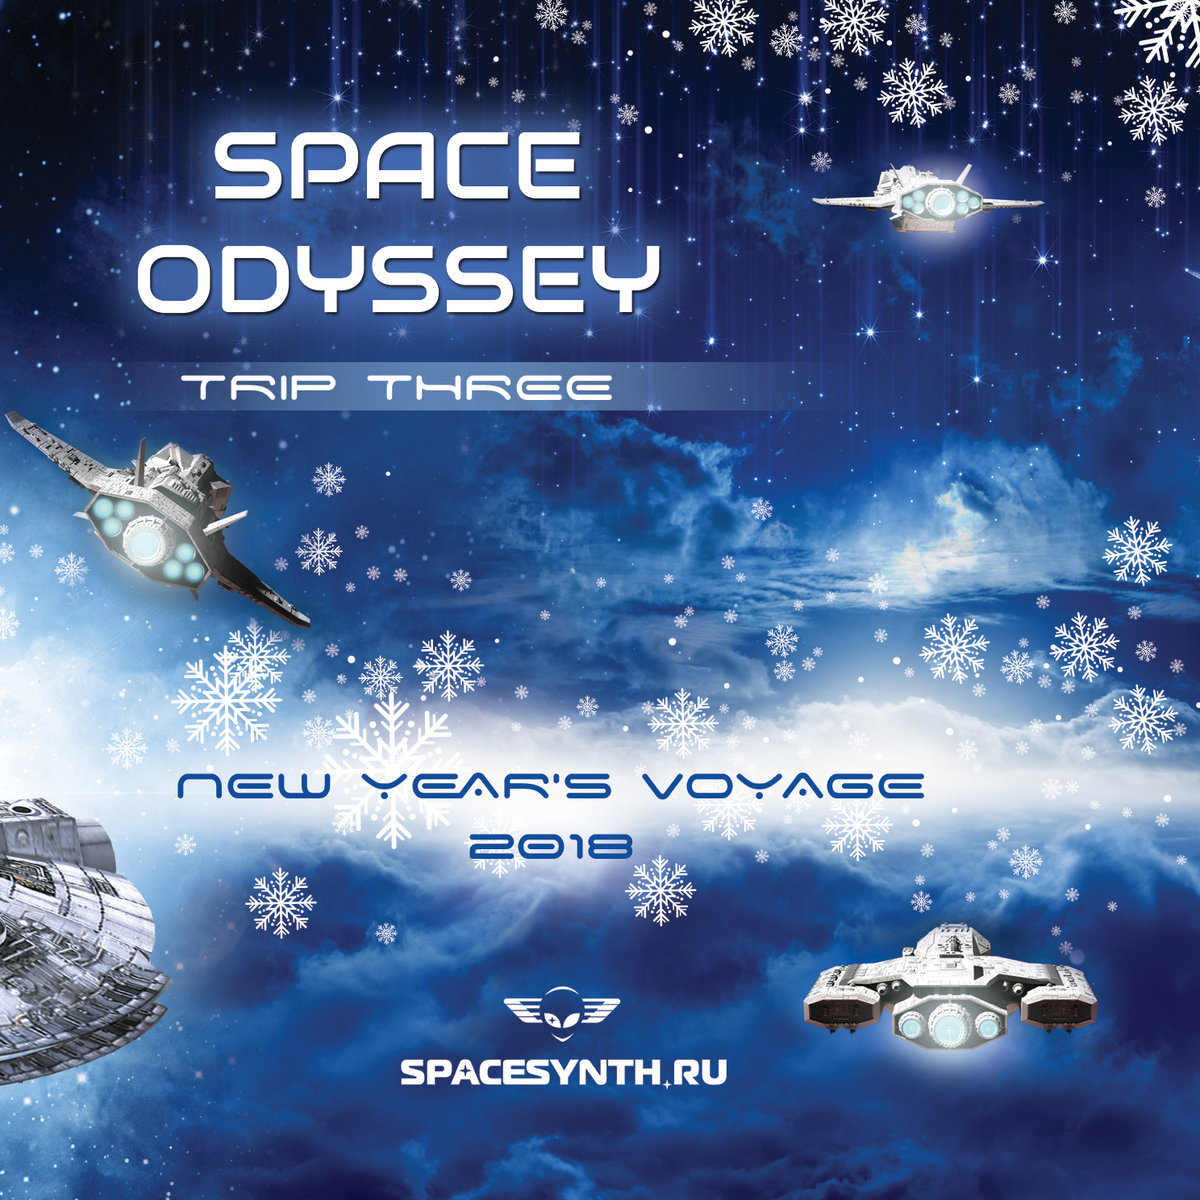 d9884bb9d0 Space Odyssey – Trip Three: New Year's Voyage 2018 | Spacesynth.ru